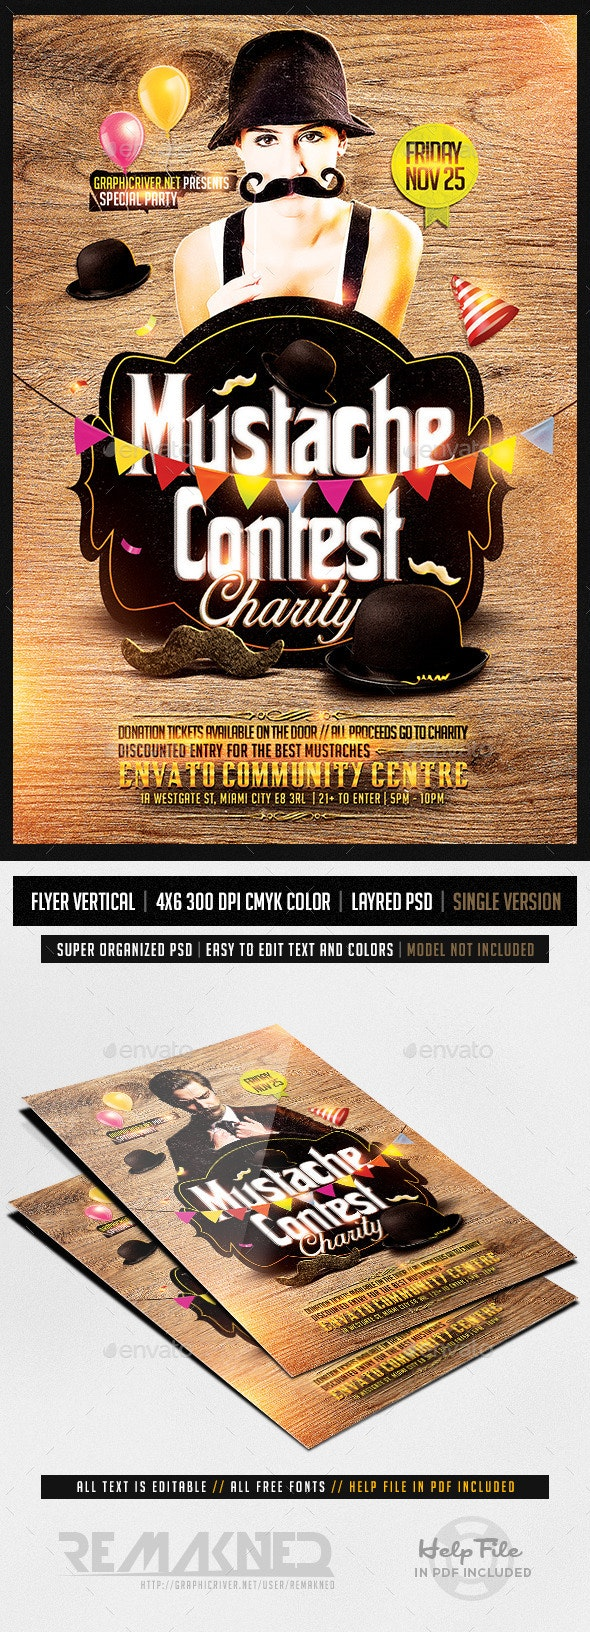 Mustache Contest Party   Flyer Template PSD - Flyers Print Templates